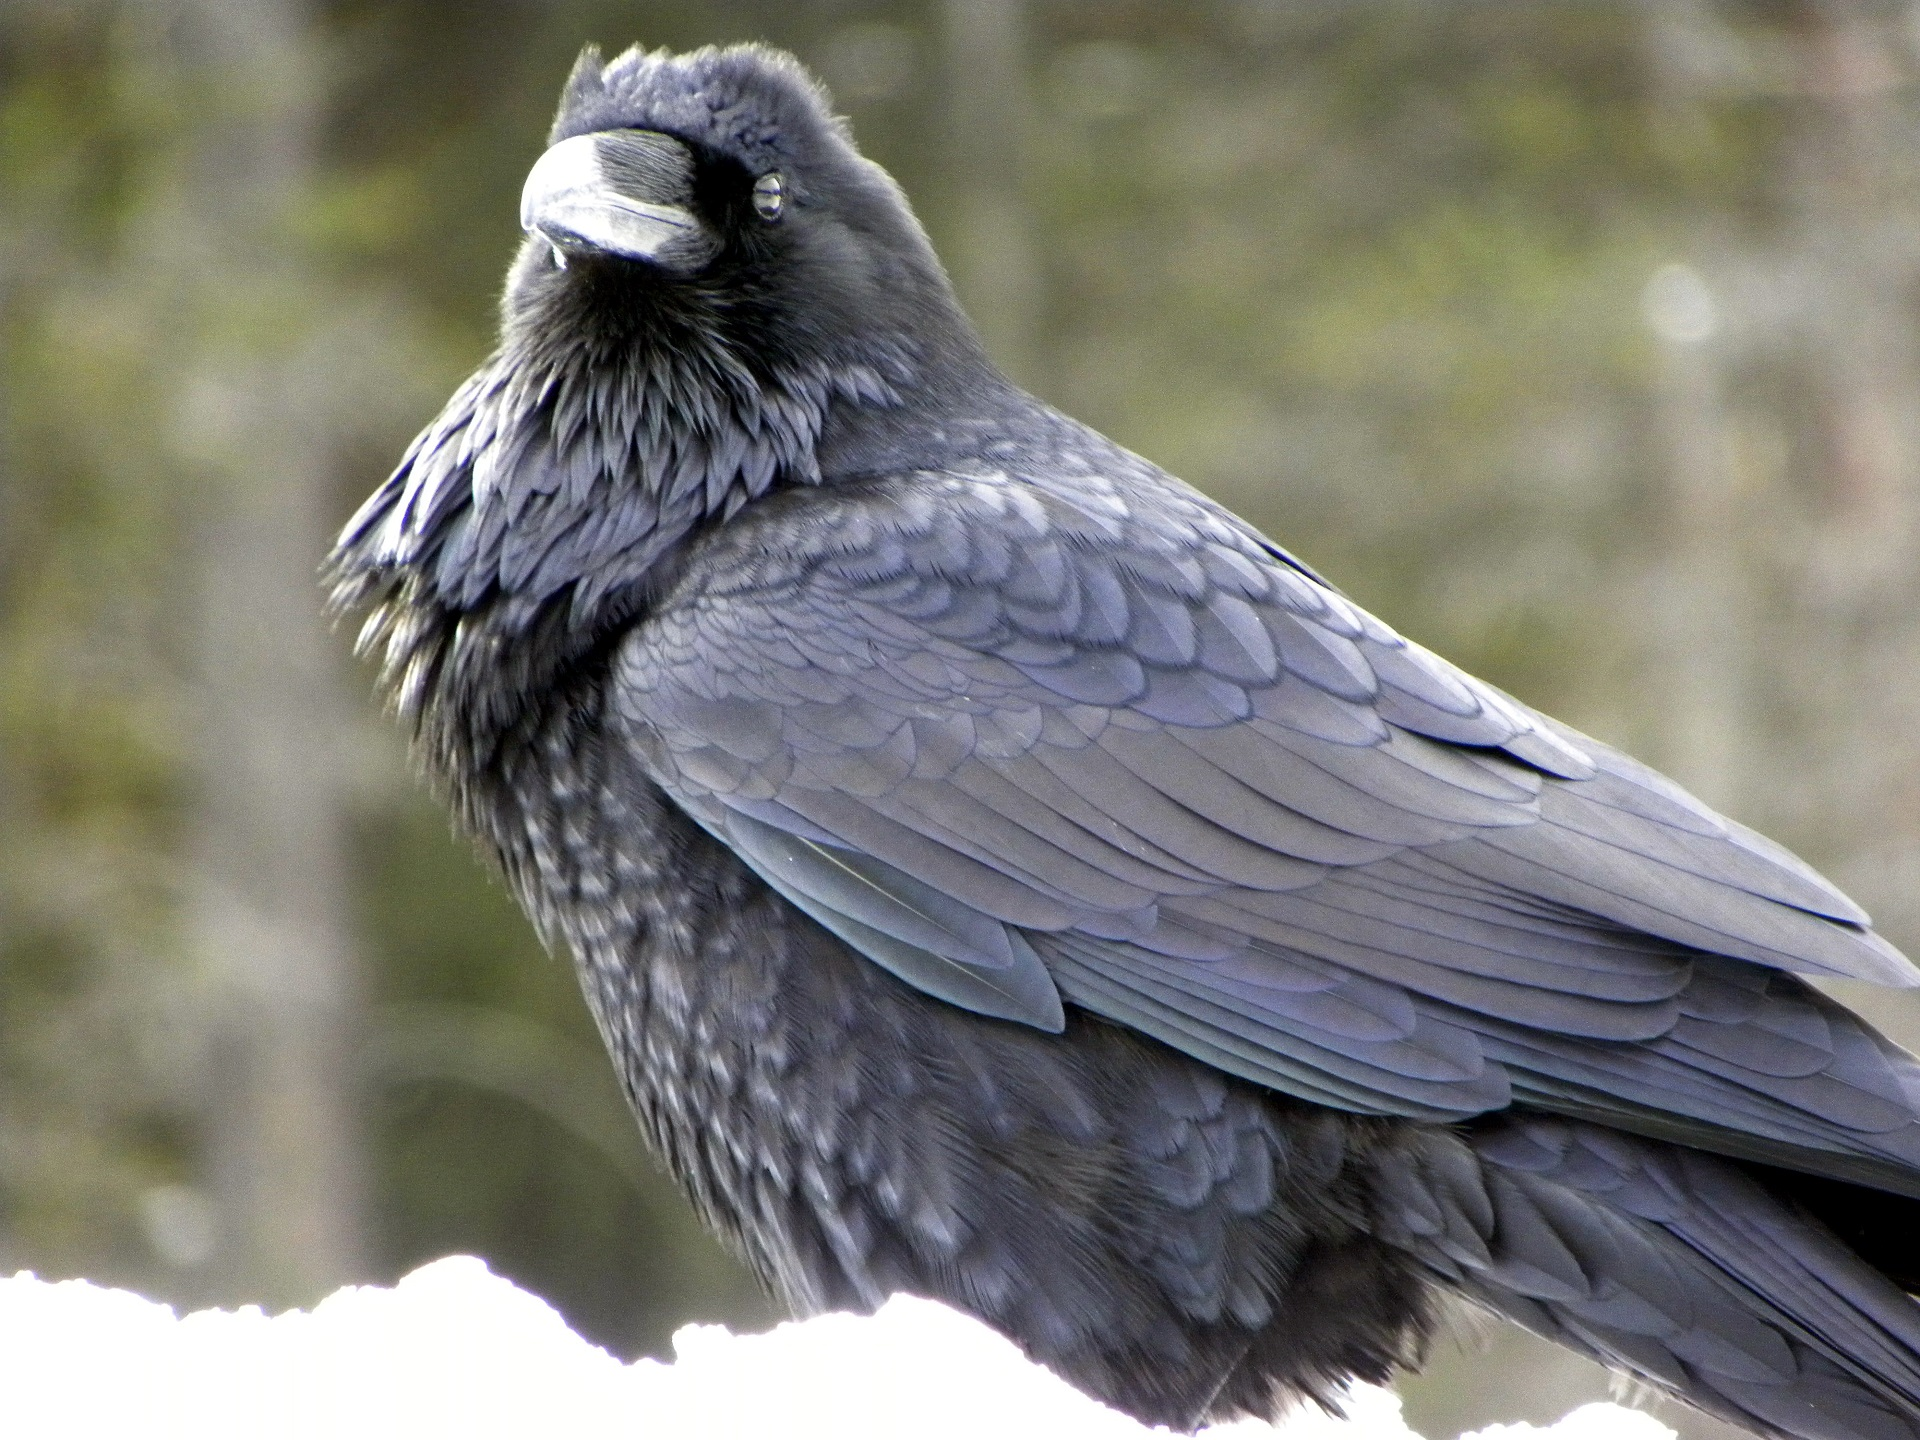 Common Raven showing its hackles and large beak